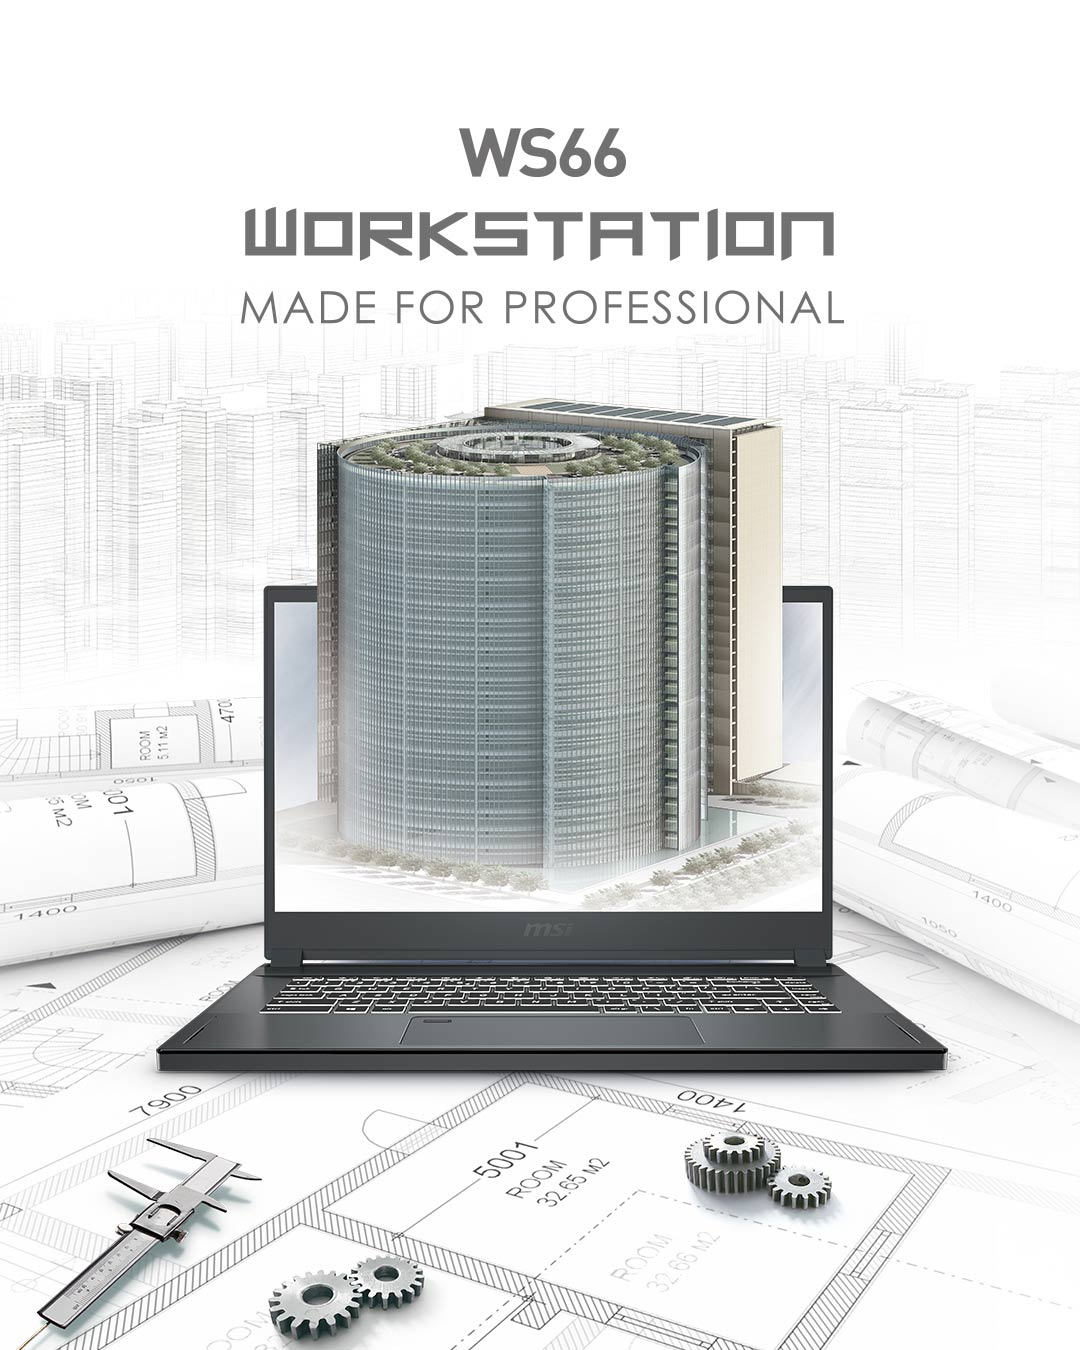 WS66 Mobile Workstation